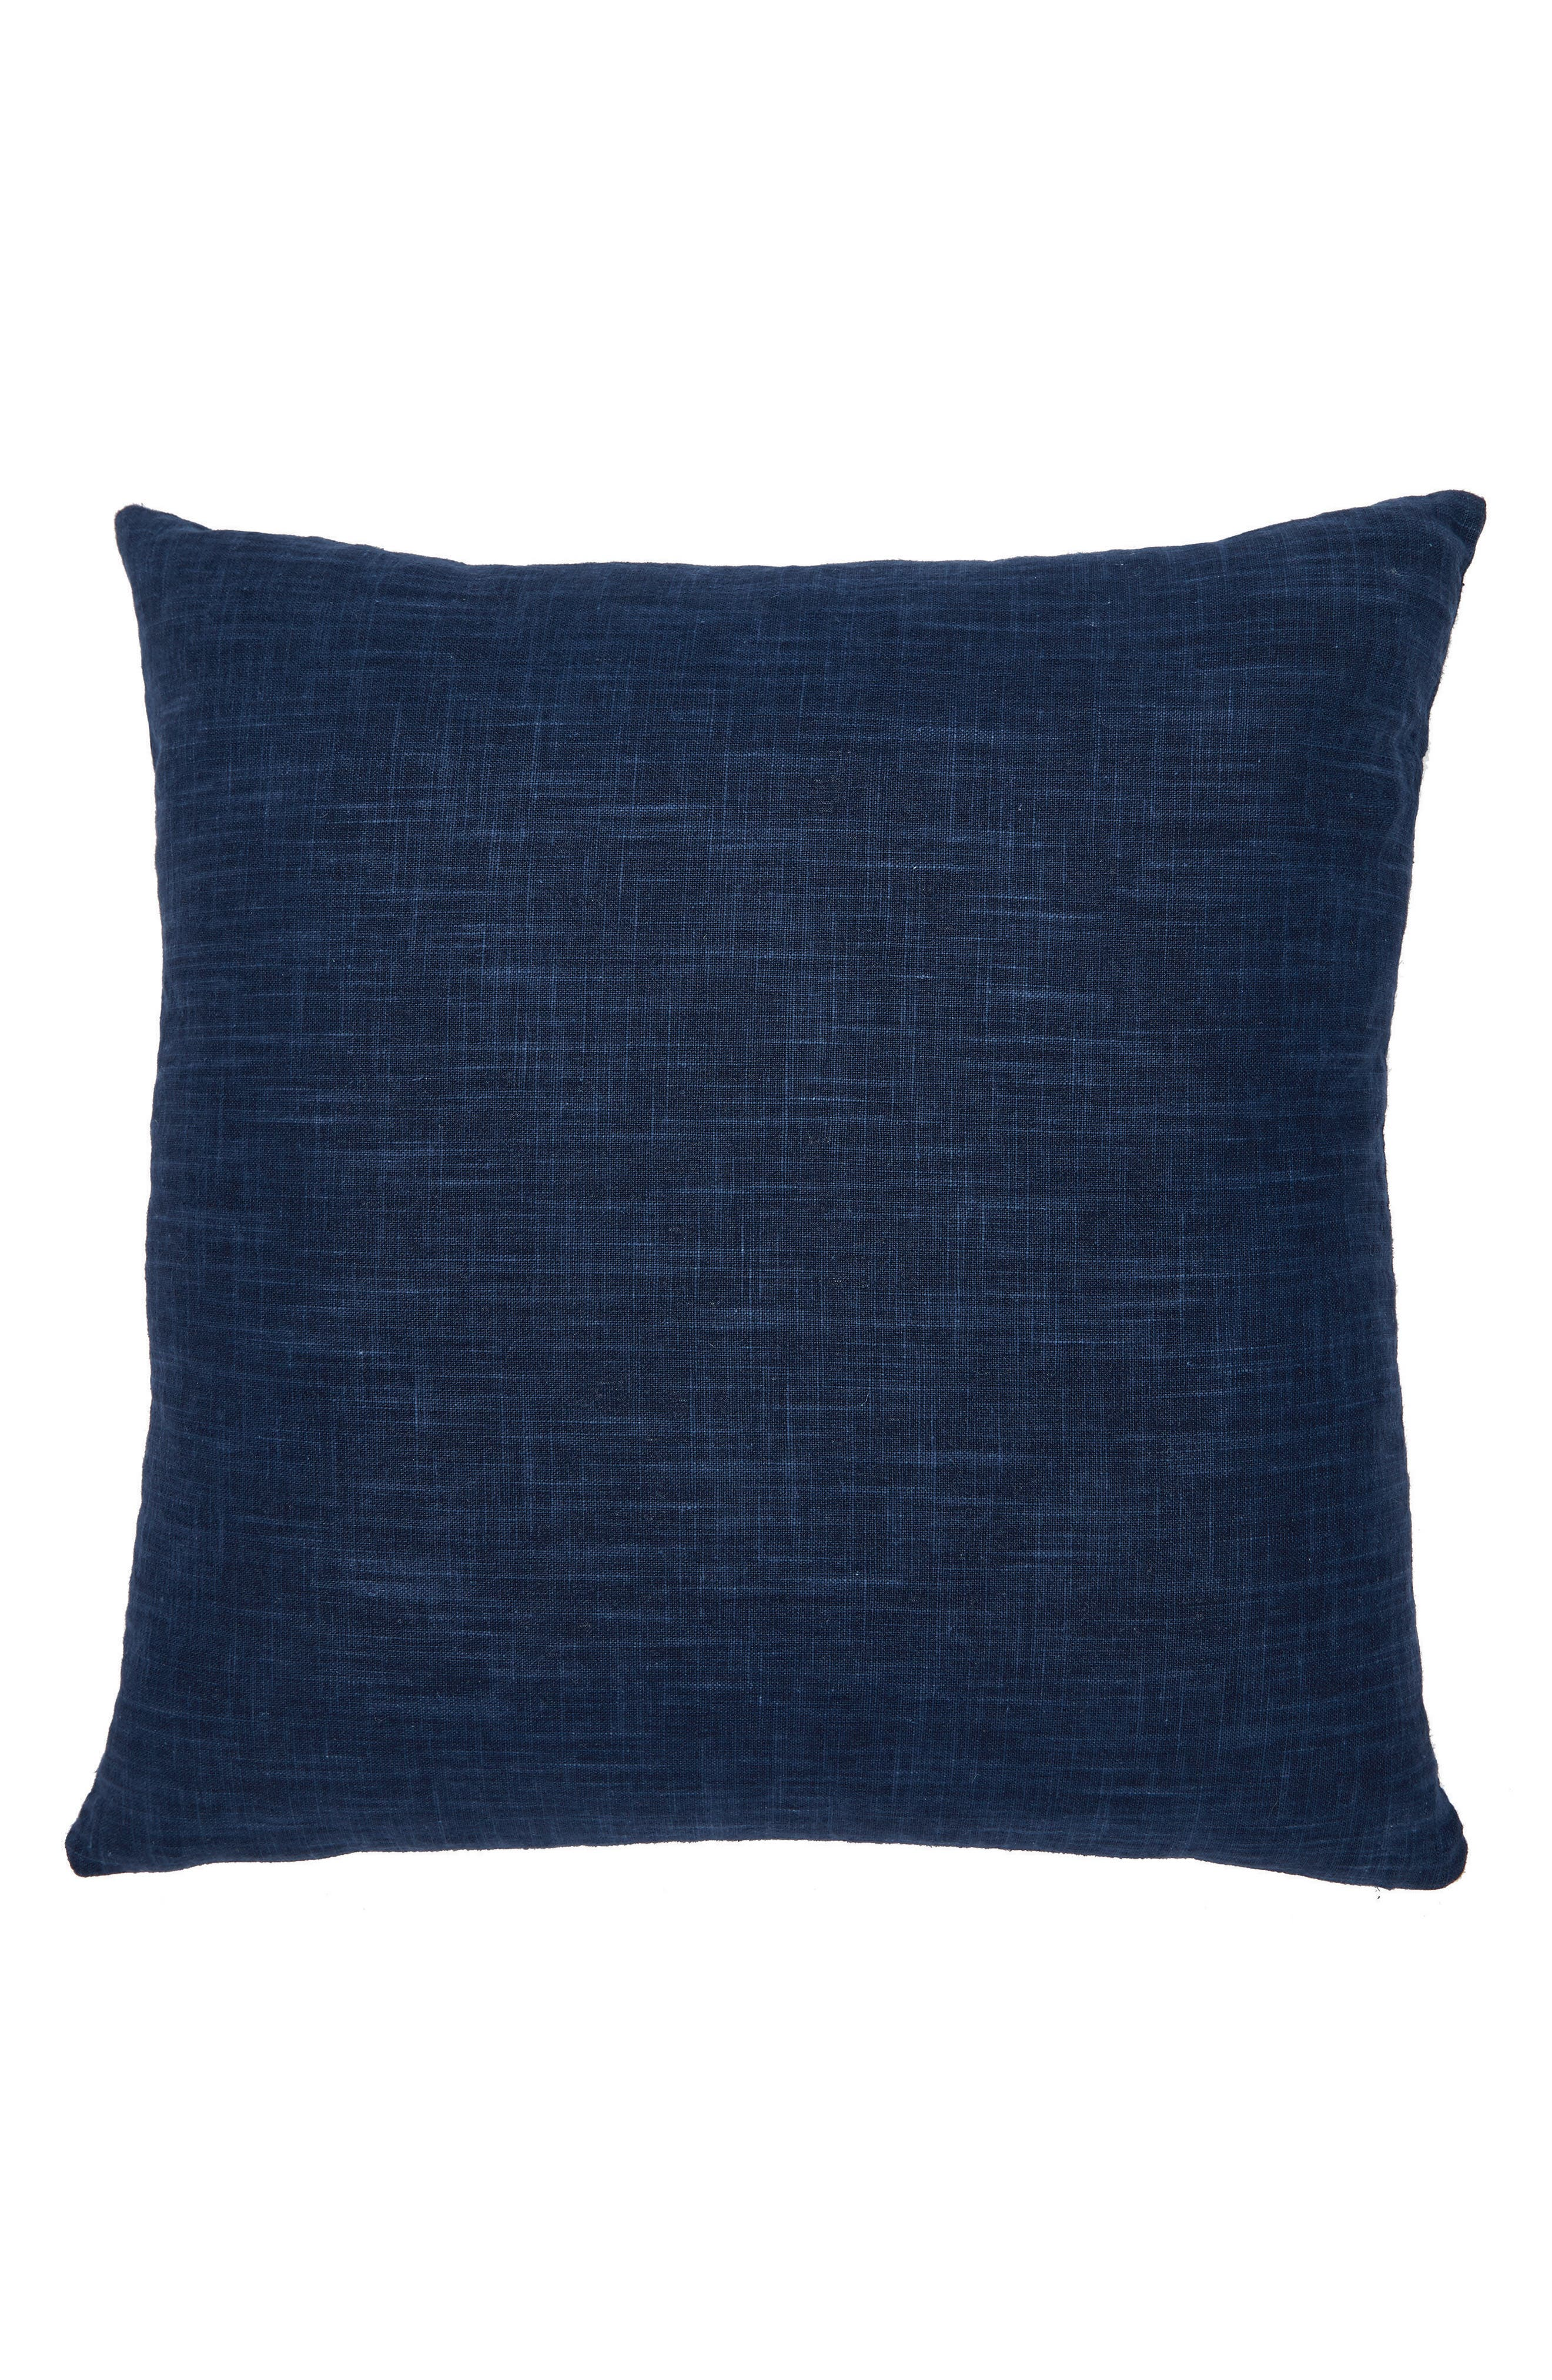 French Knots Pillow,                             Alternate thumbnail 2, color,